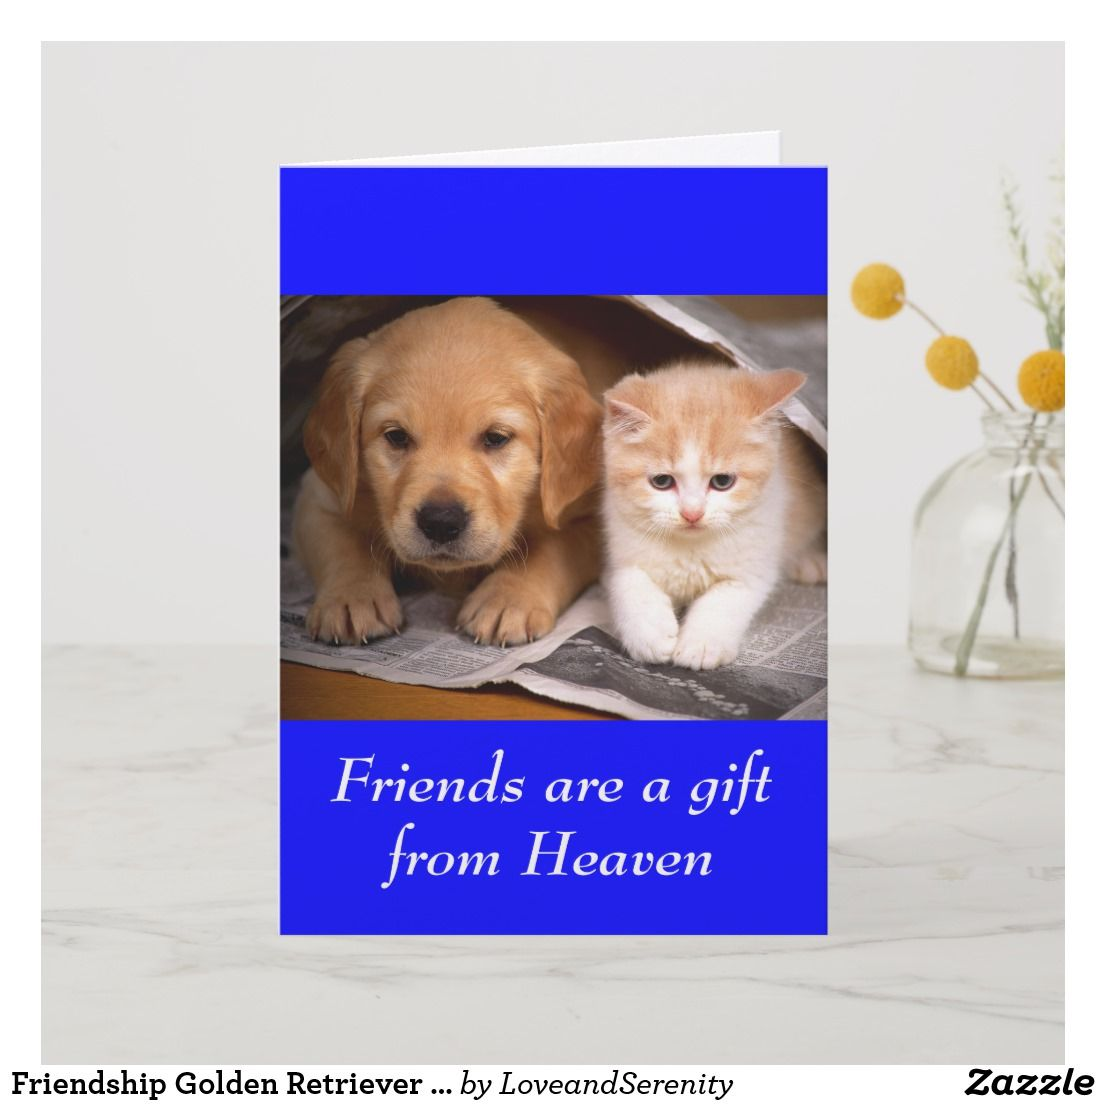 Friendship Golden Retriever Puppy Kitten Card Zazzle Com